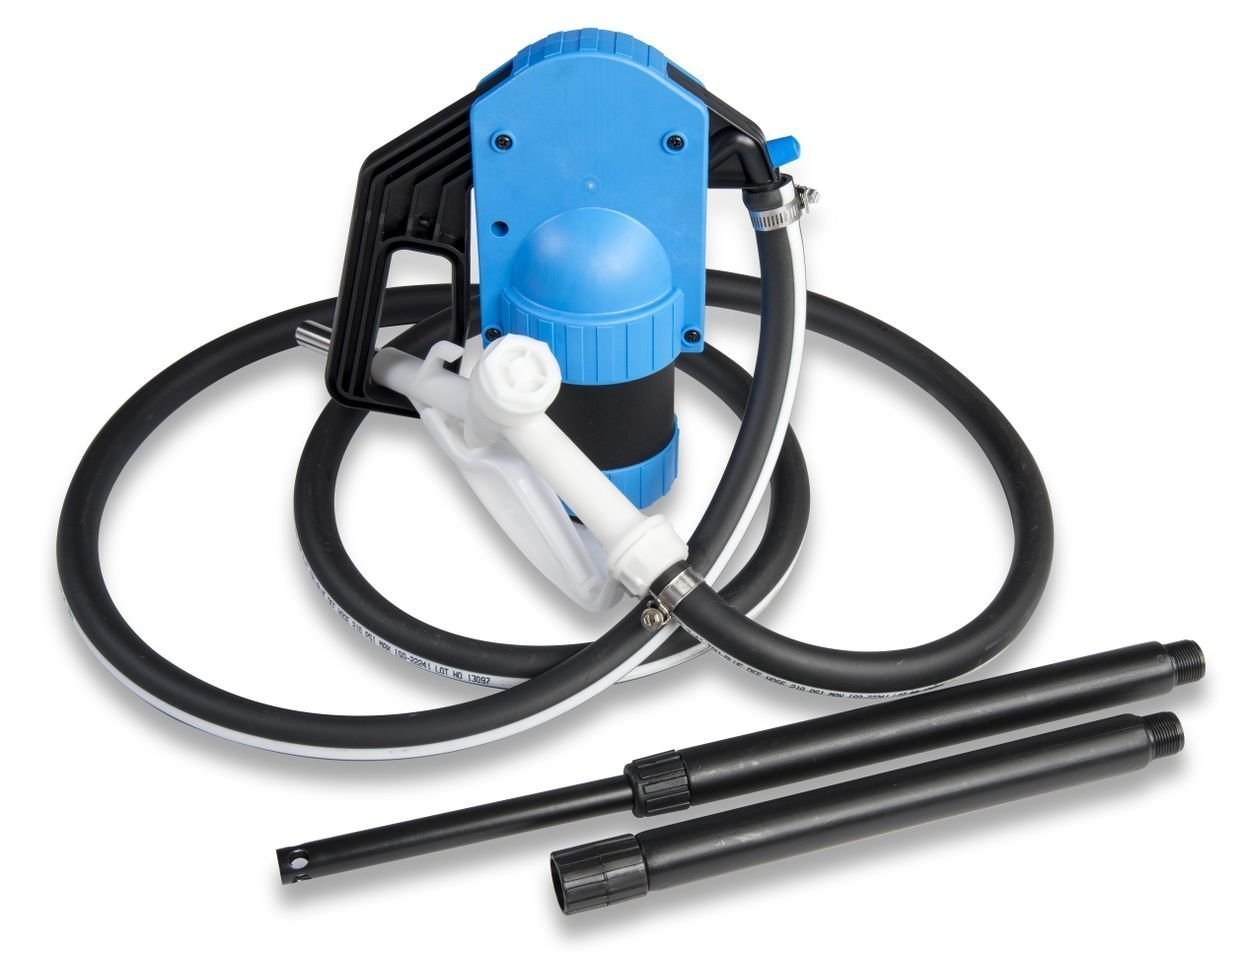 Titan 902-014-1 TCT TM1 Manual Pump with Hose and Nozzle, Plastic